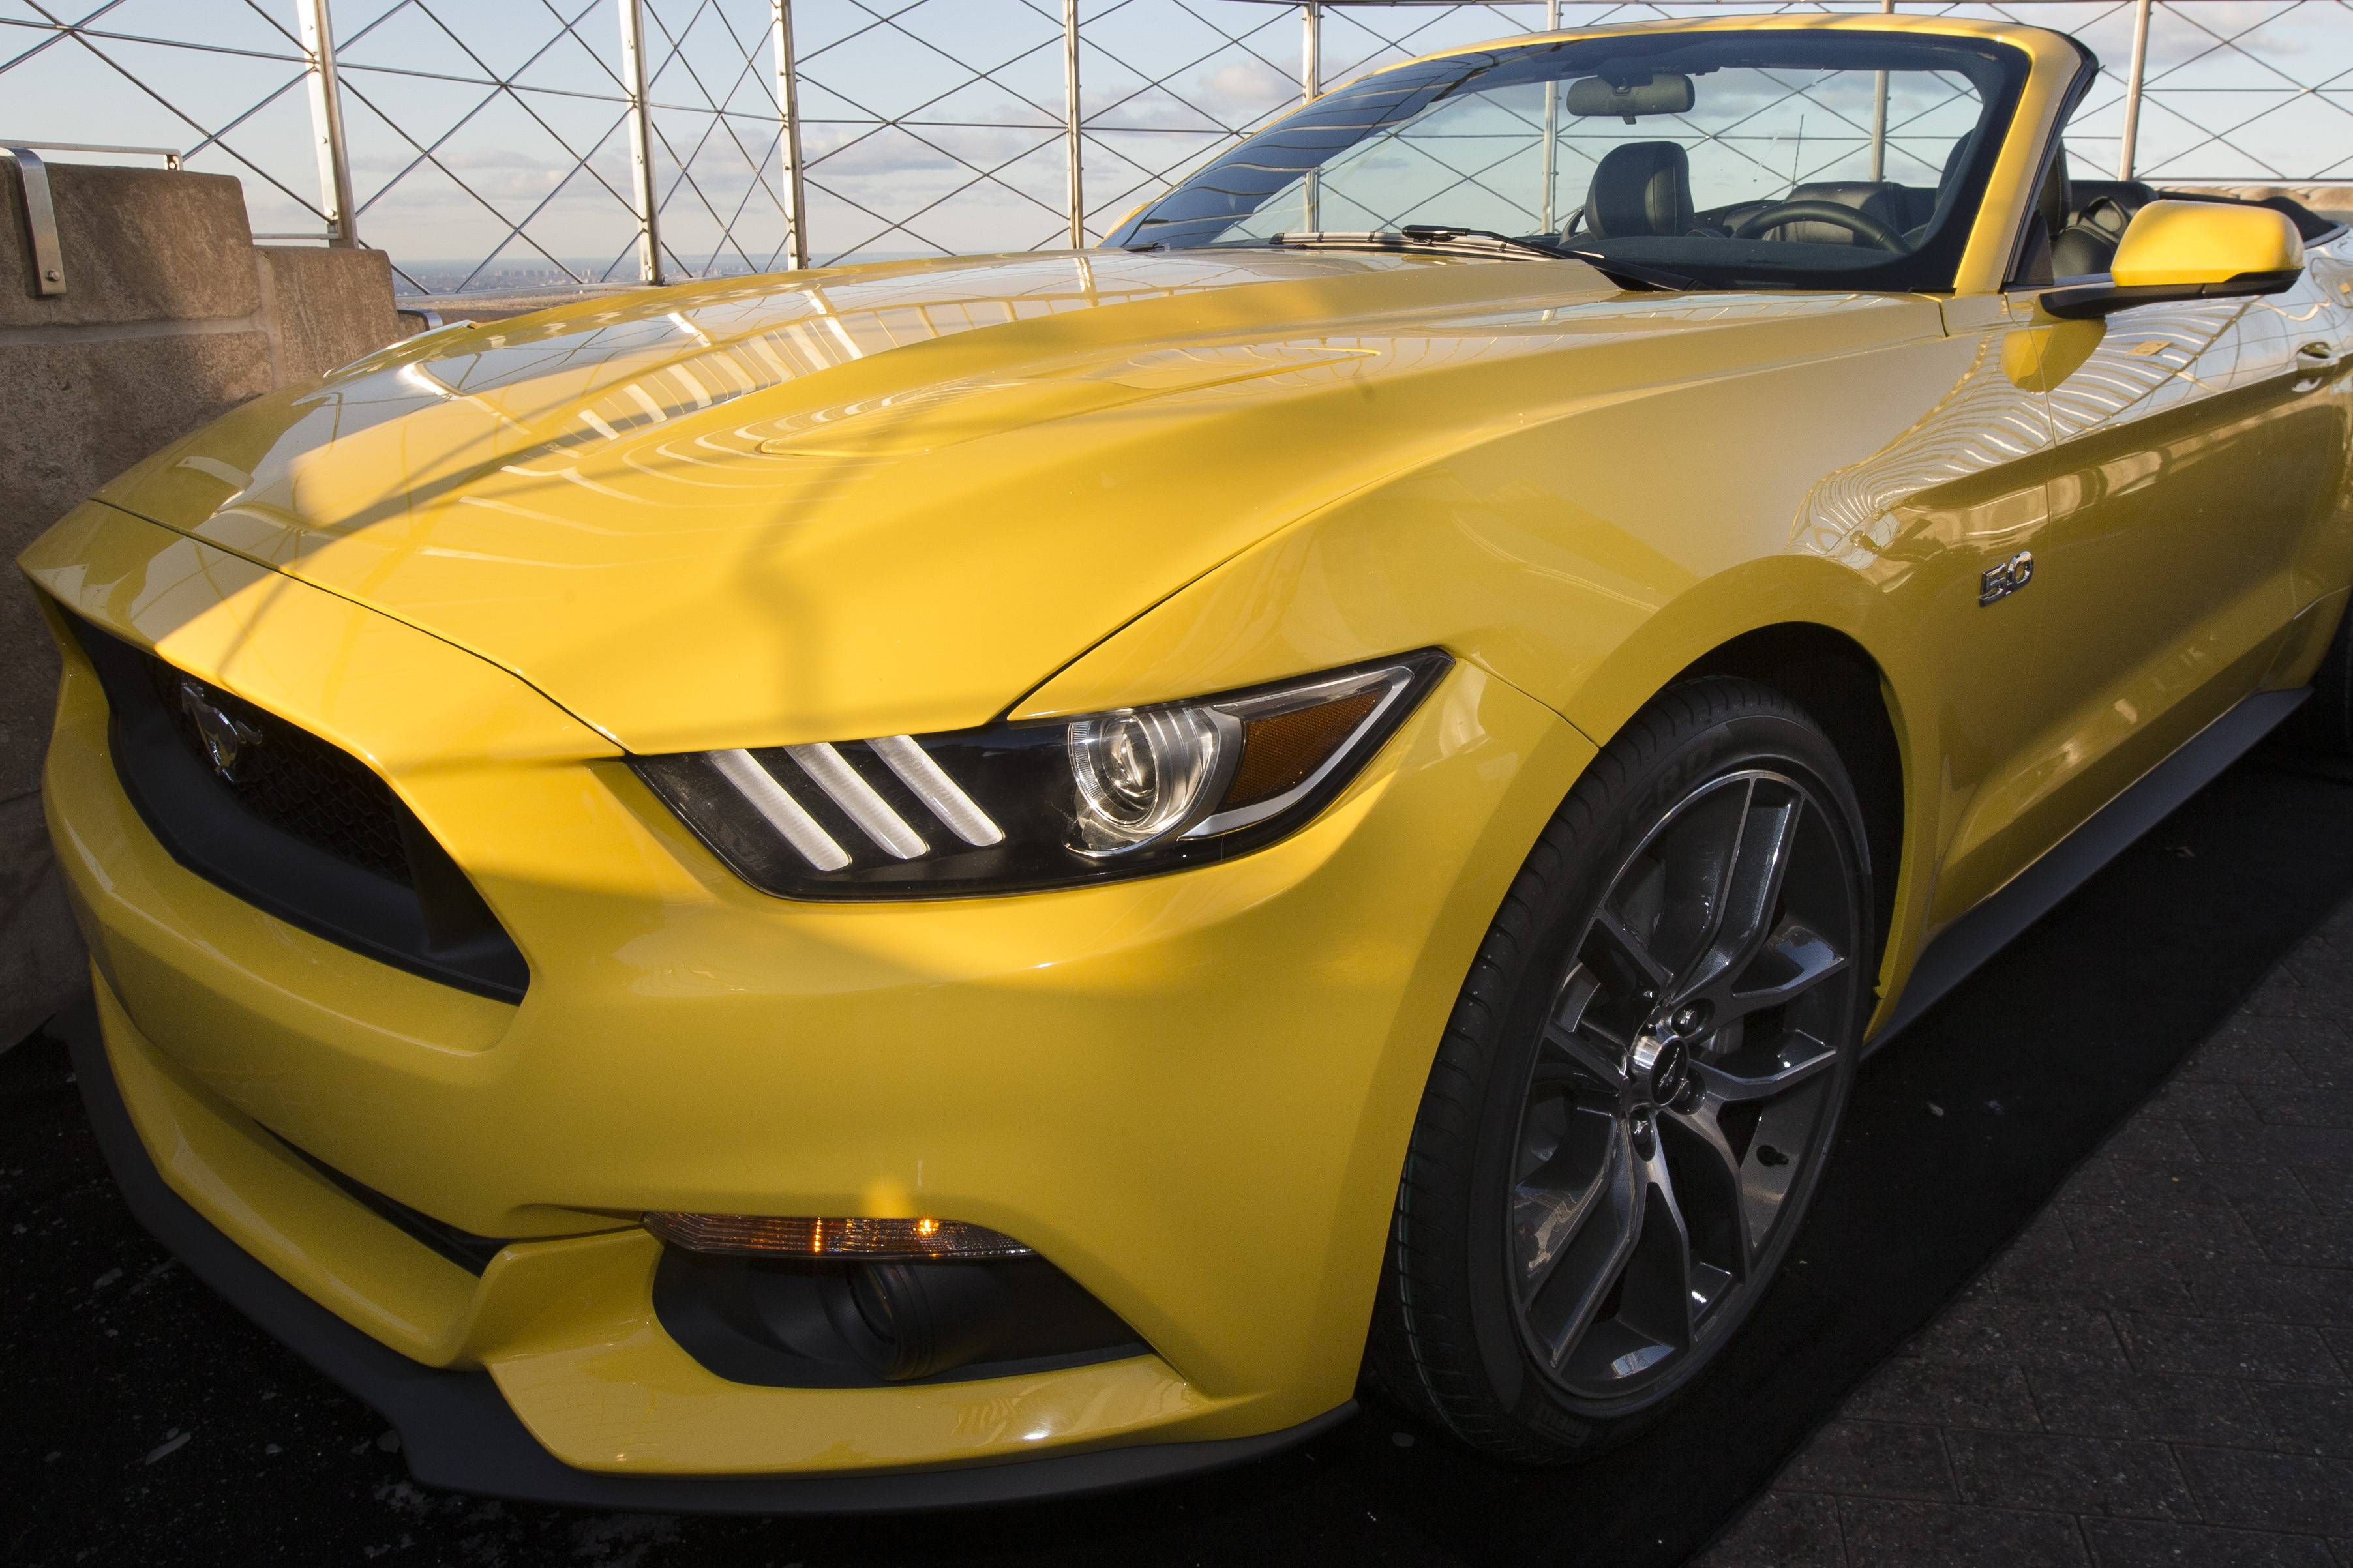 Ford Motor Company introduces the 2015 Mustang convertible on the 86th floor observation deck of the Empire State Building. It's the first time a car has been there since 1965, when Ford put a Mustang convertible there.